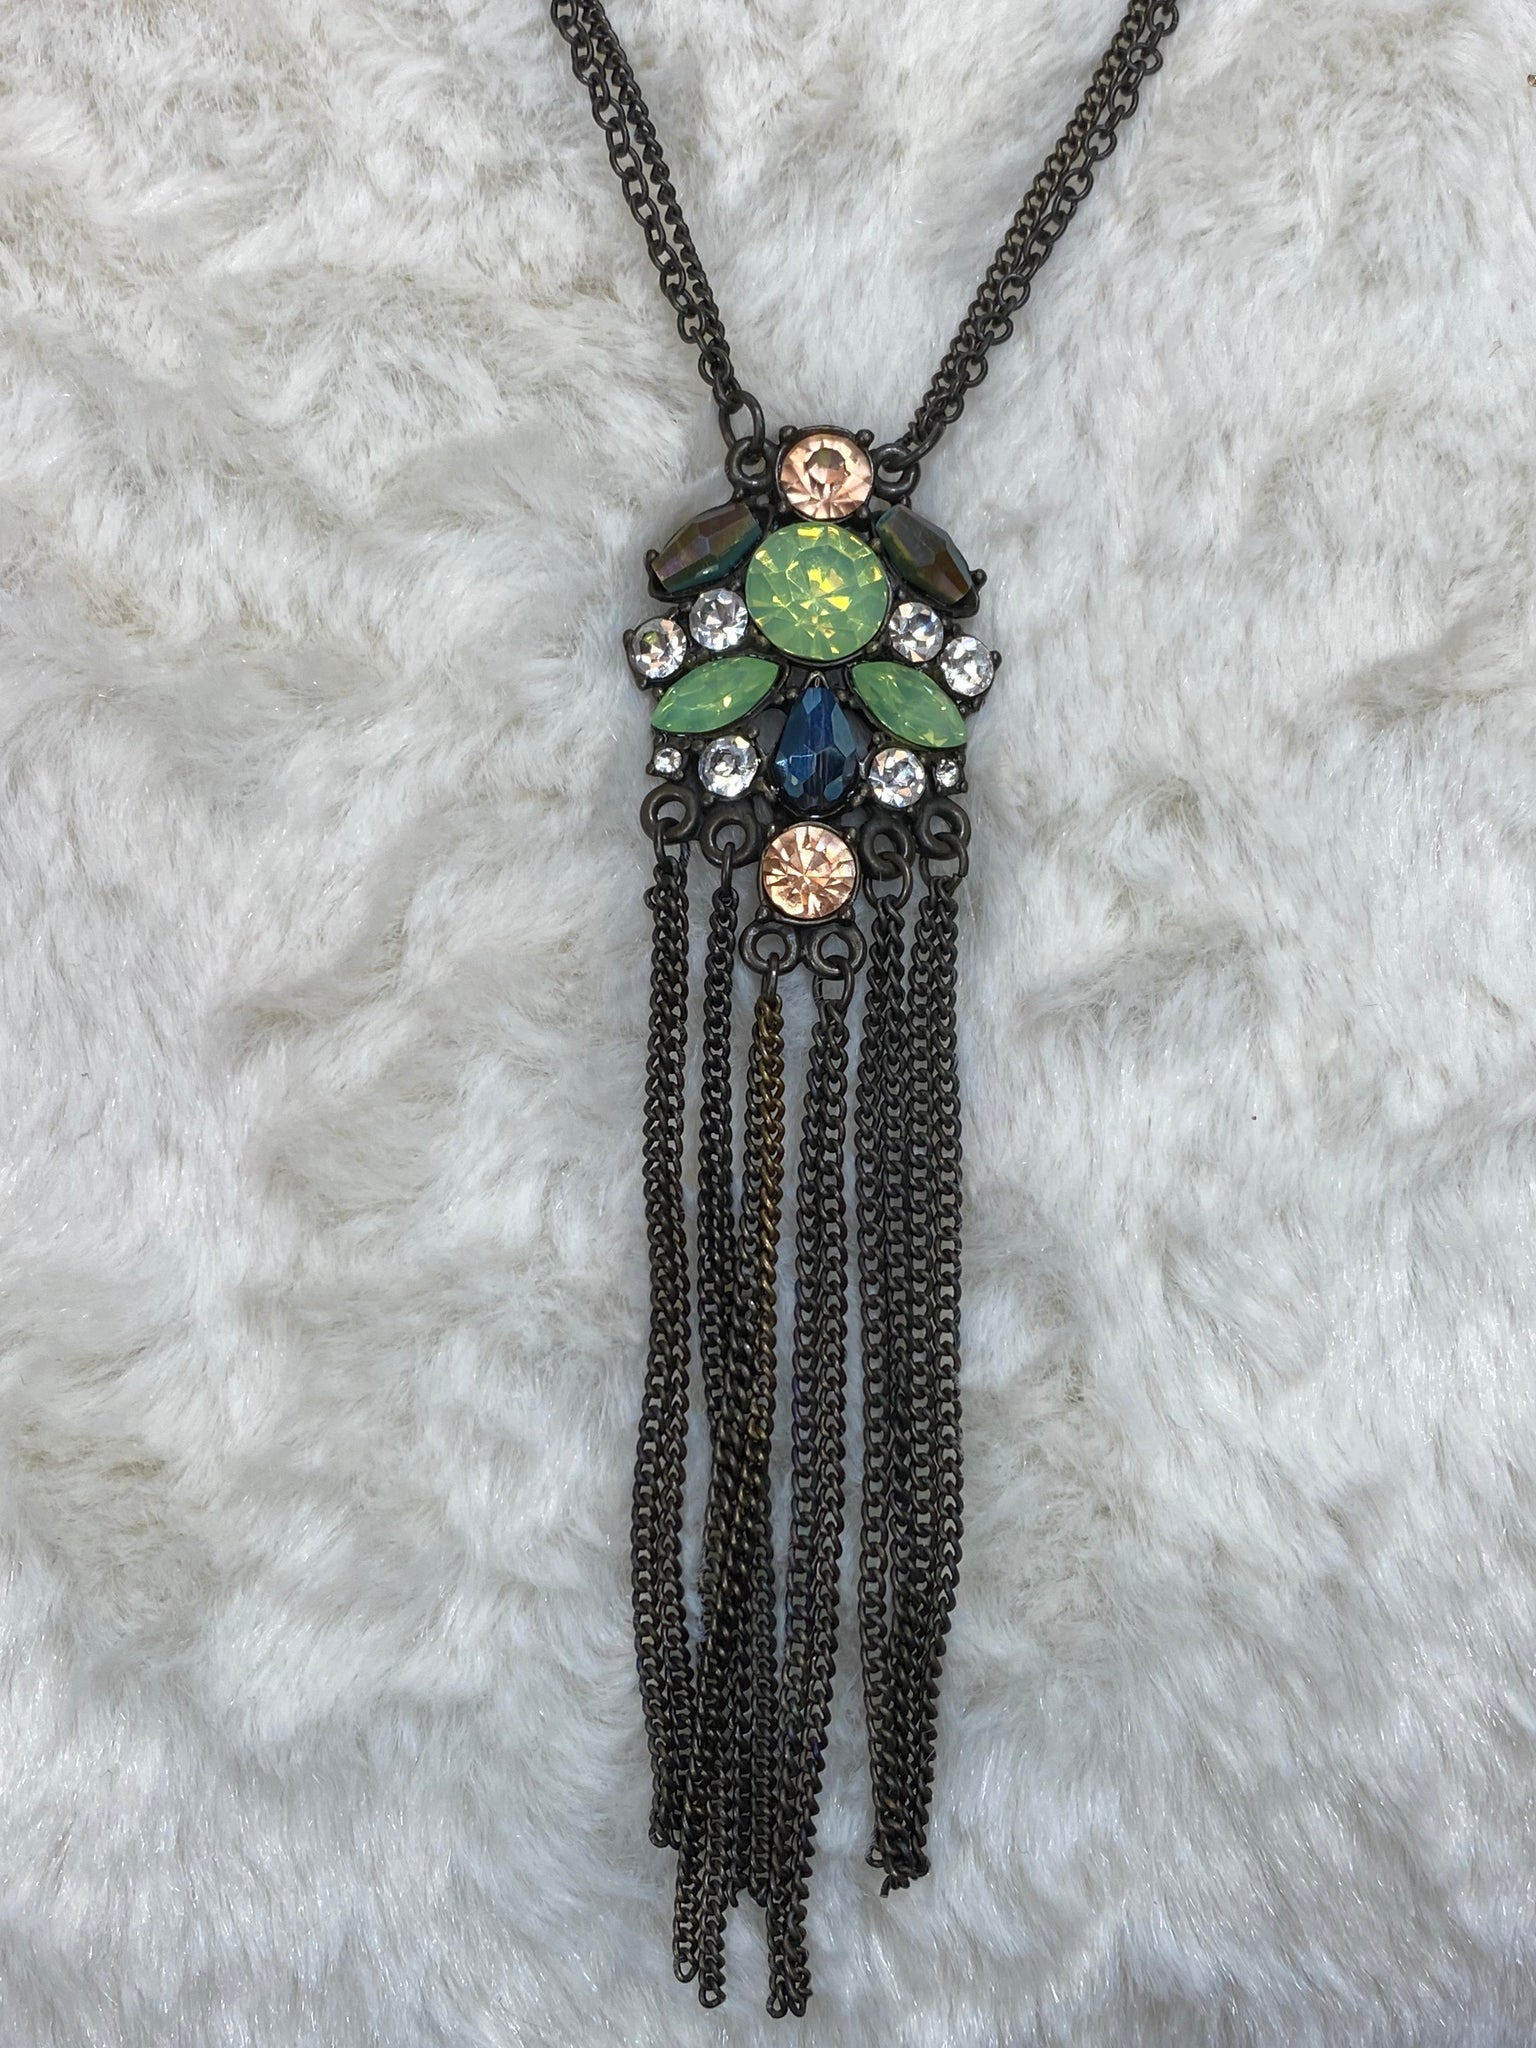 Antique Look Necklace - True Bliss Boutique